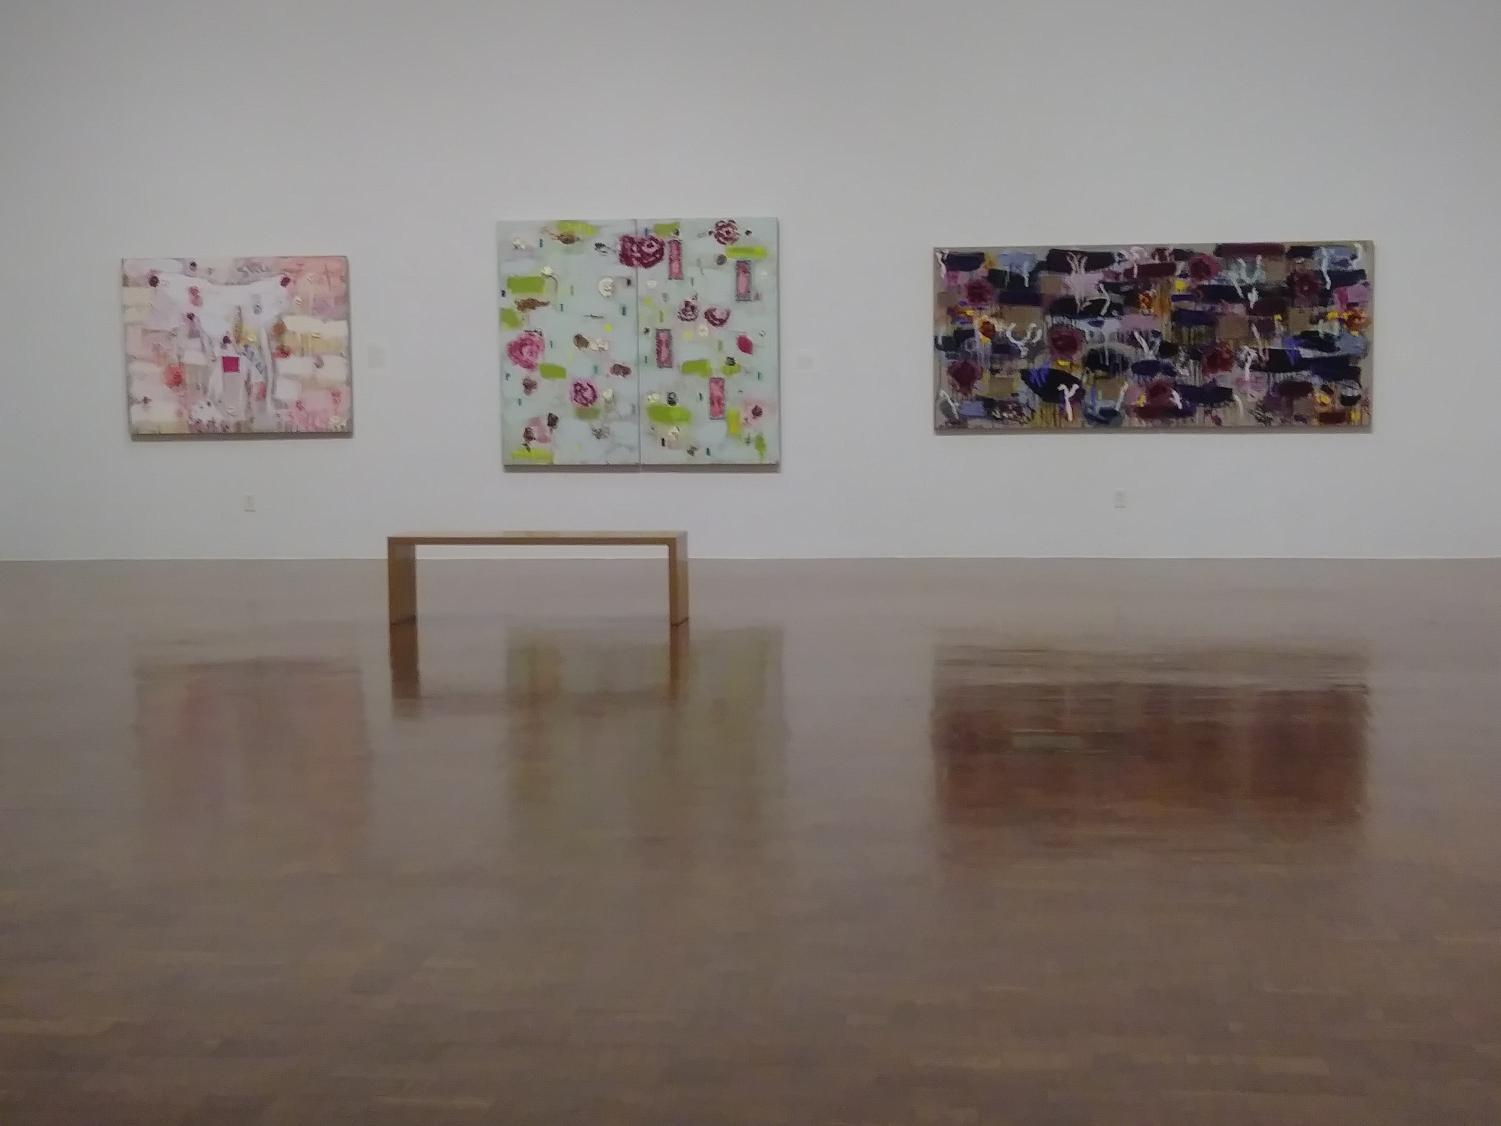 Photo of  Still, Wallflowers, Roses and Weeds (Left to Right) all created by Joan Snyder as part of the Interwoven exhibition.